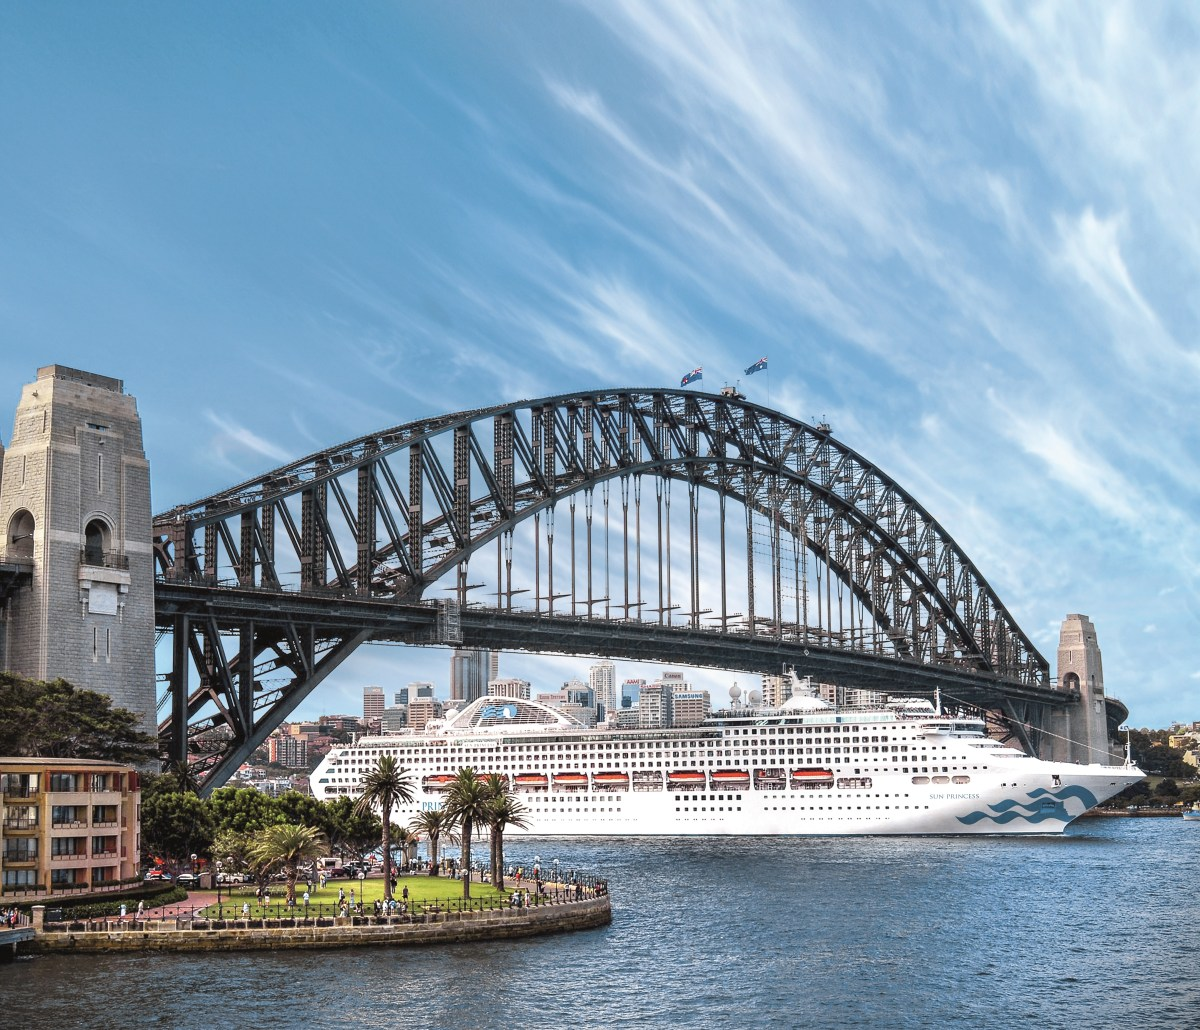 Princess Cruises Celebrates Australia Day